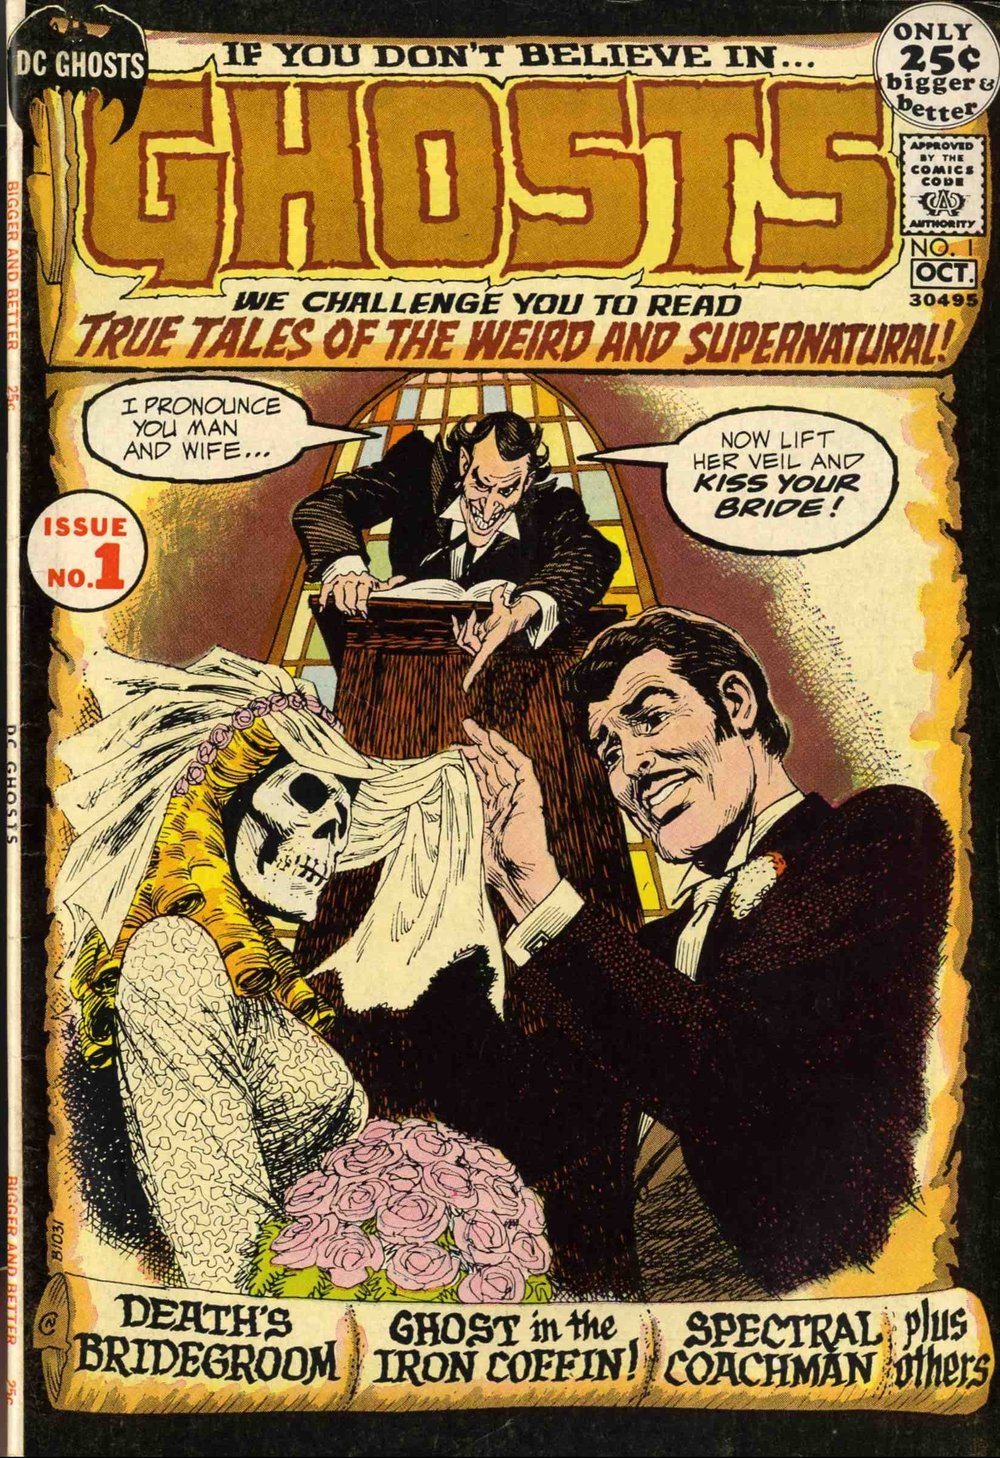 Ghosts (1971) #1, cover by Nick Cardy.